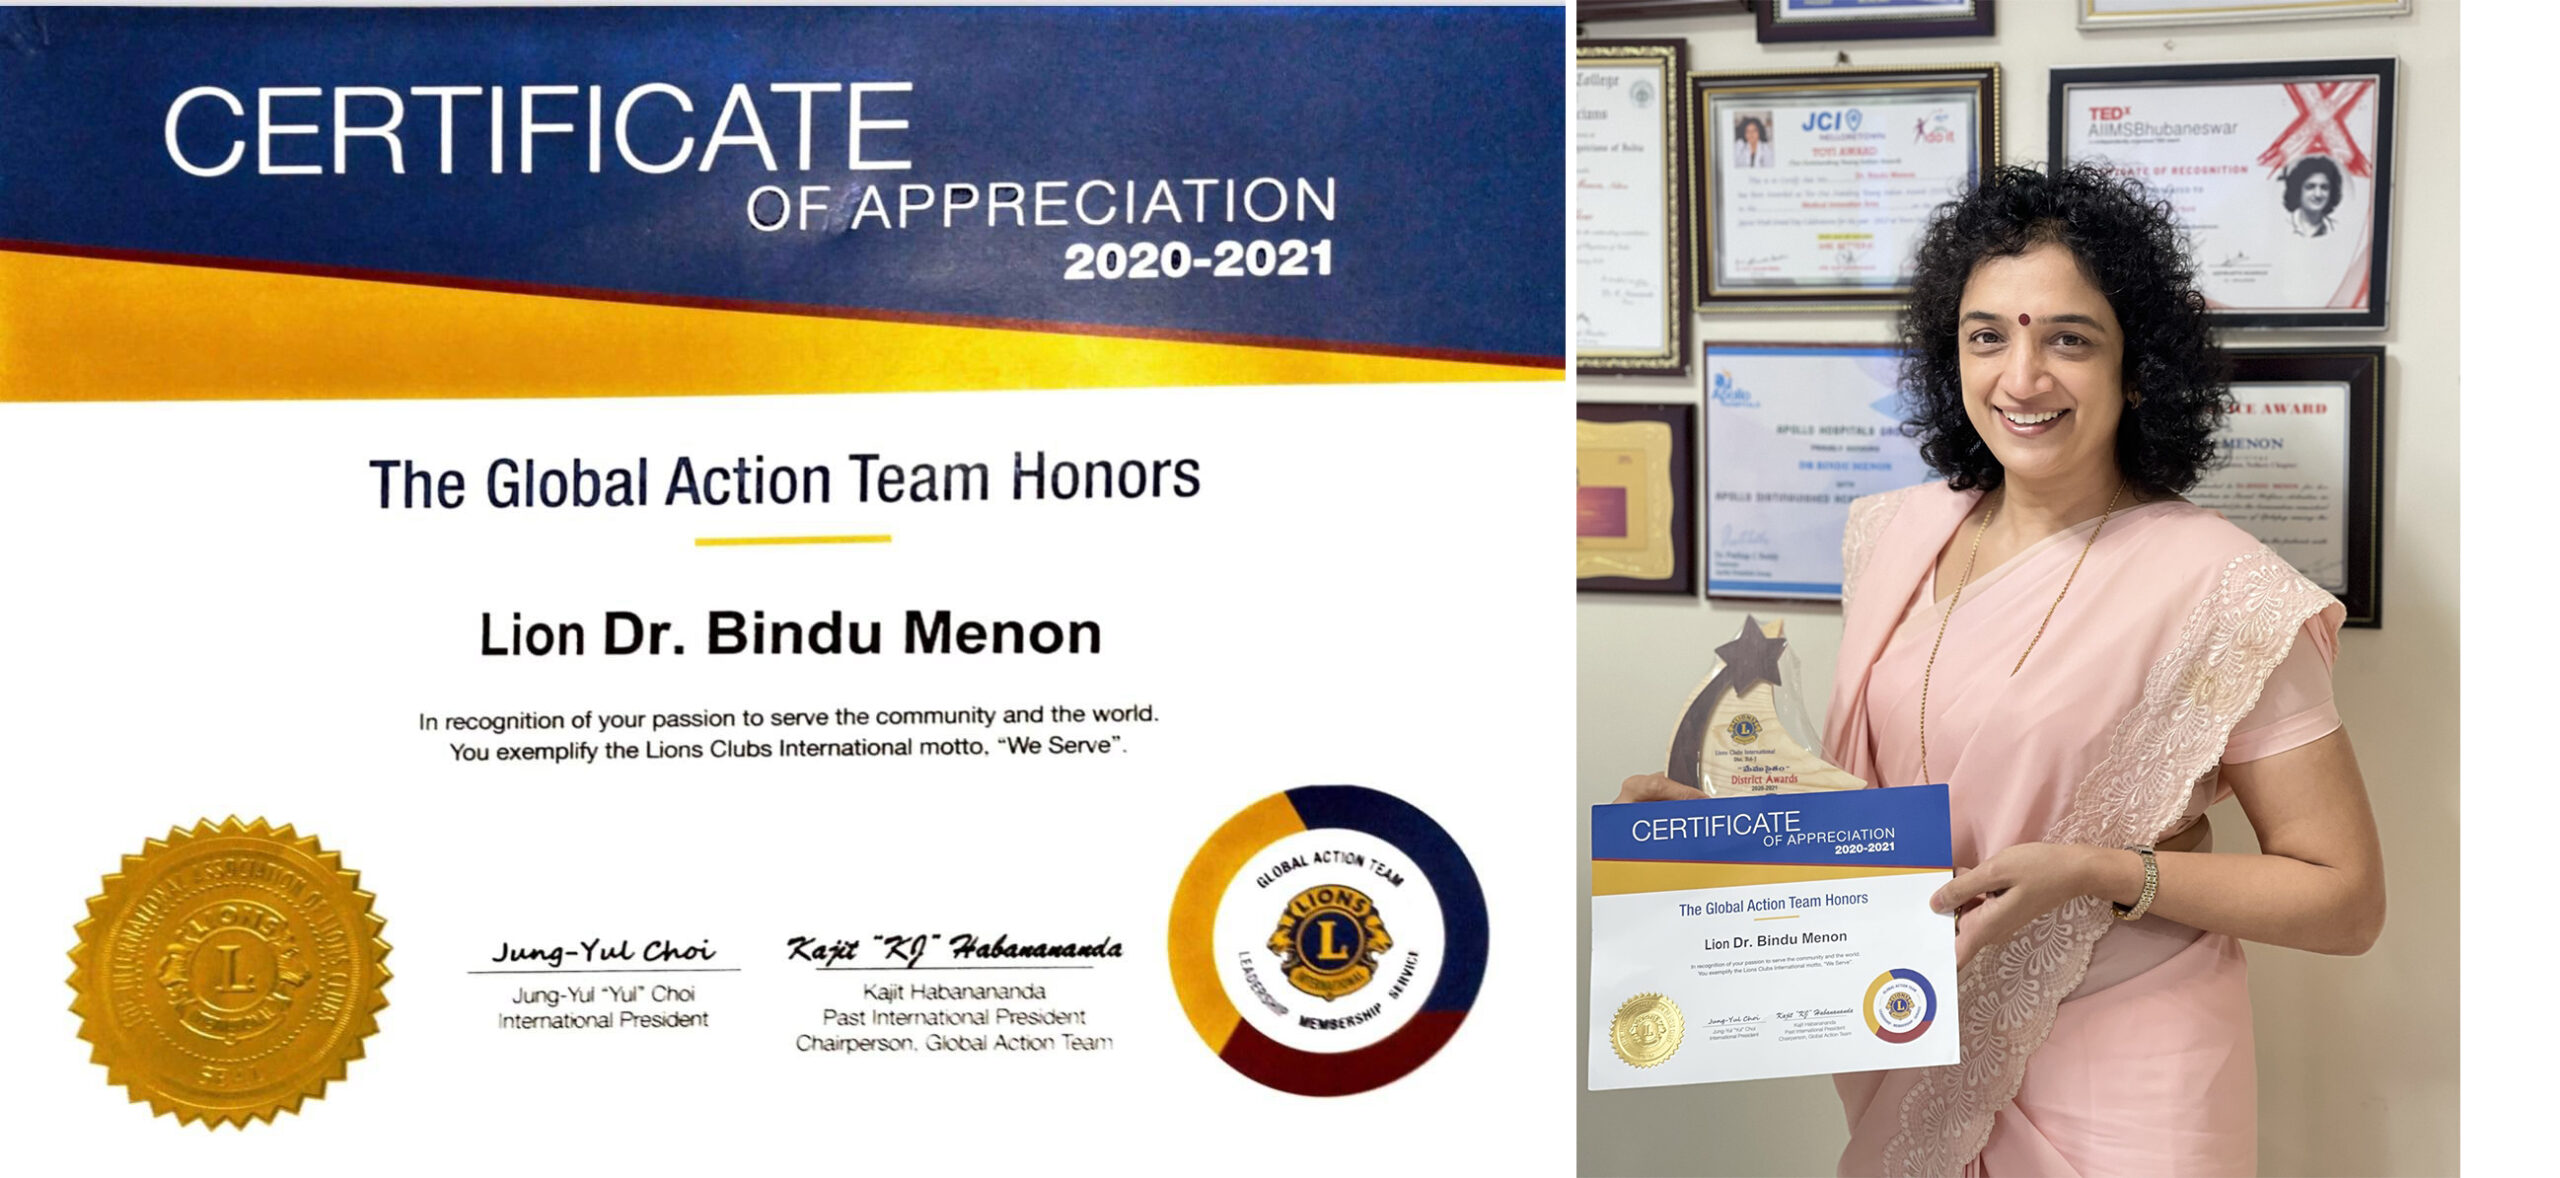 Received the ions club International President's Appreciation certificate and Governors Appreciation